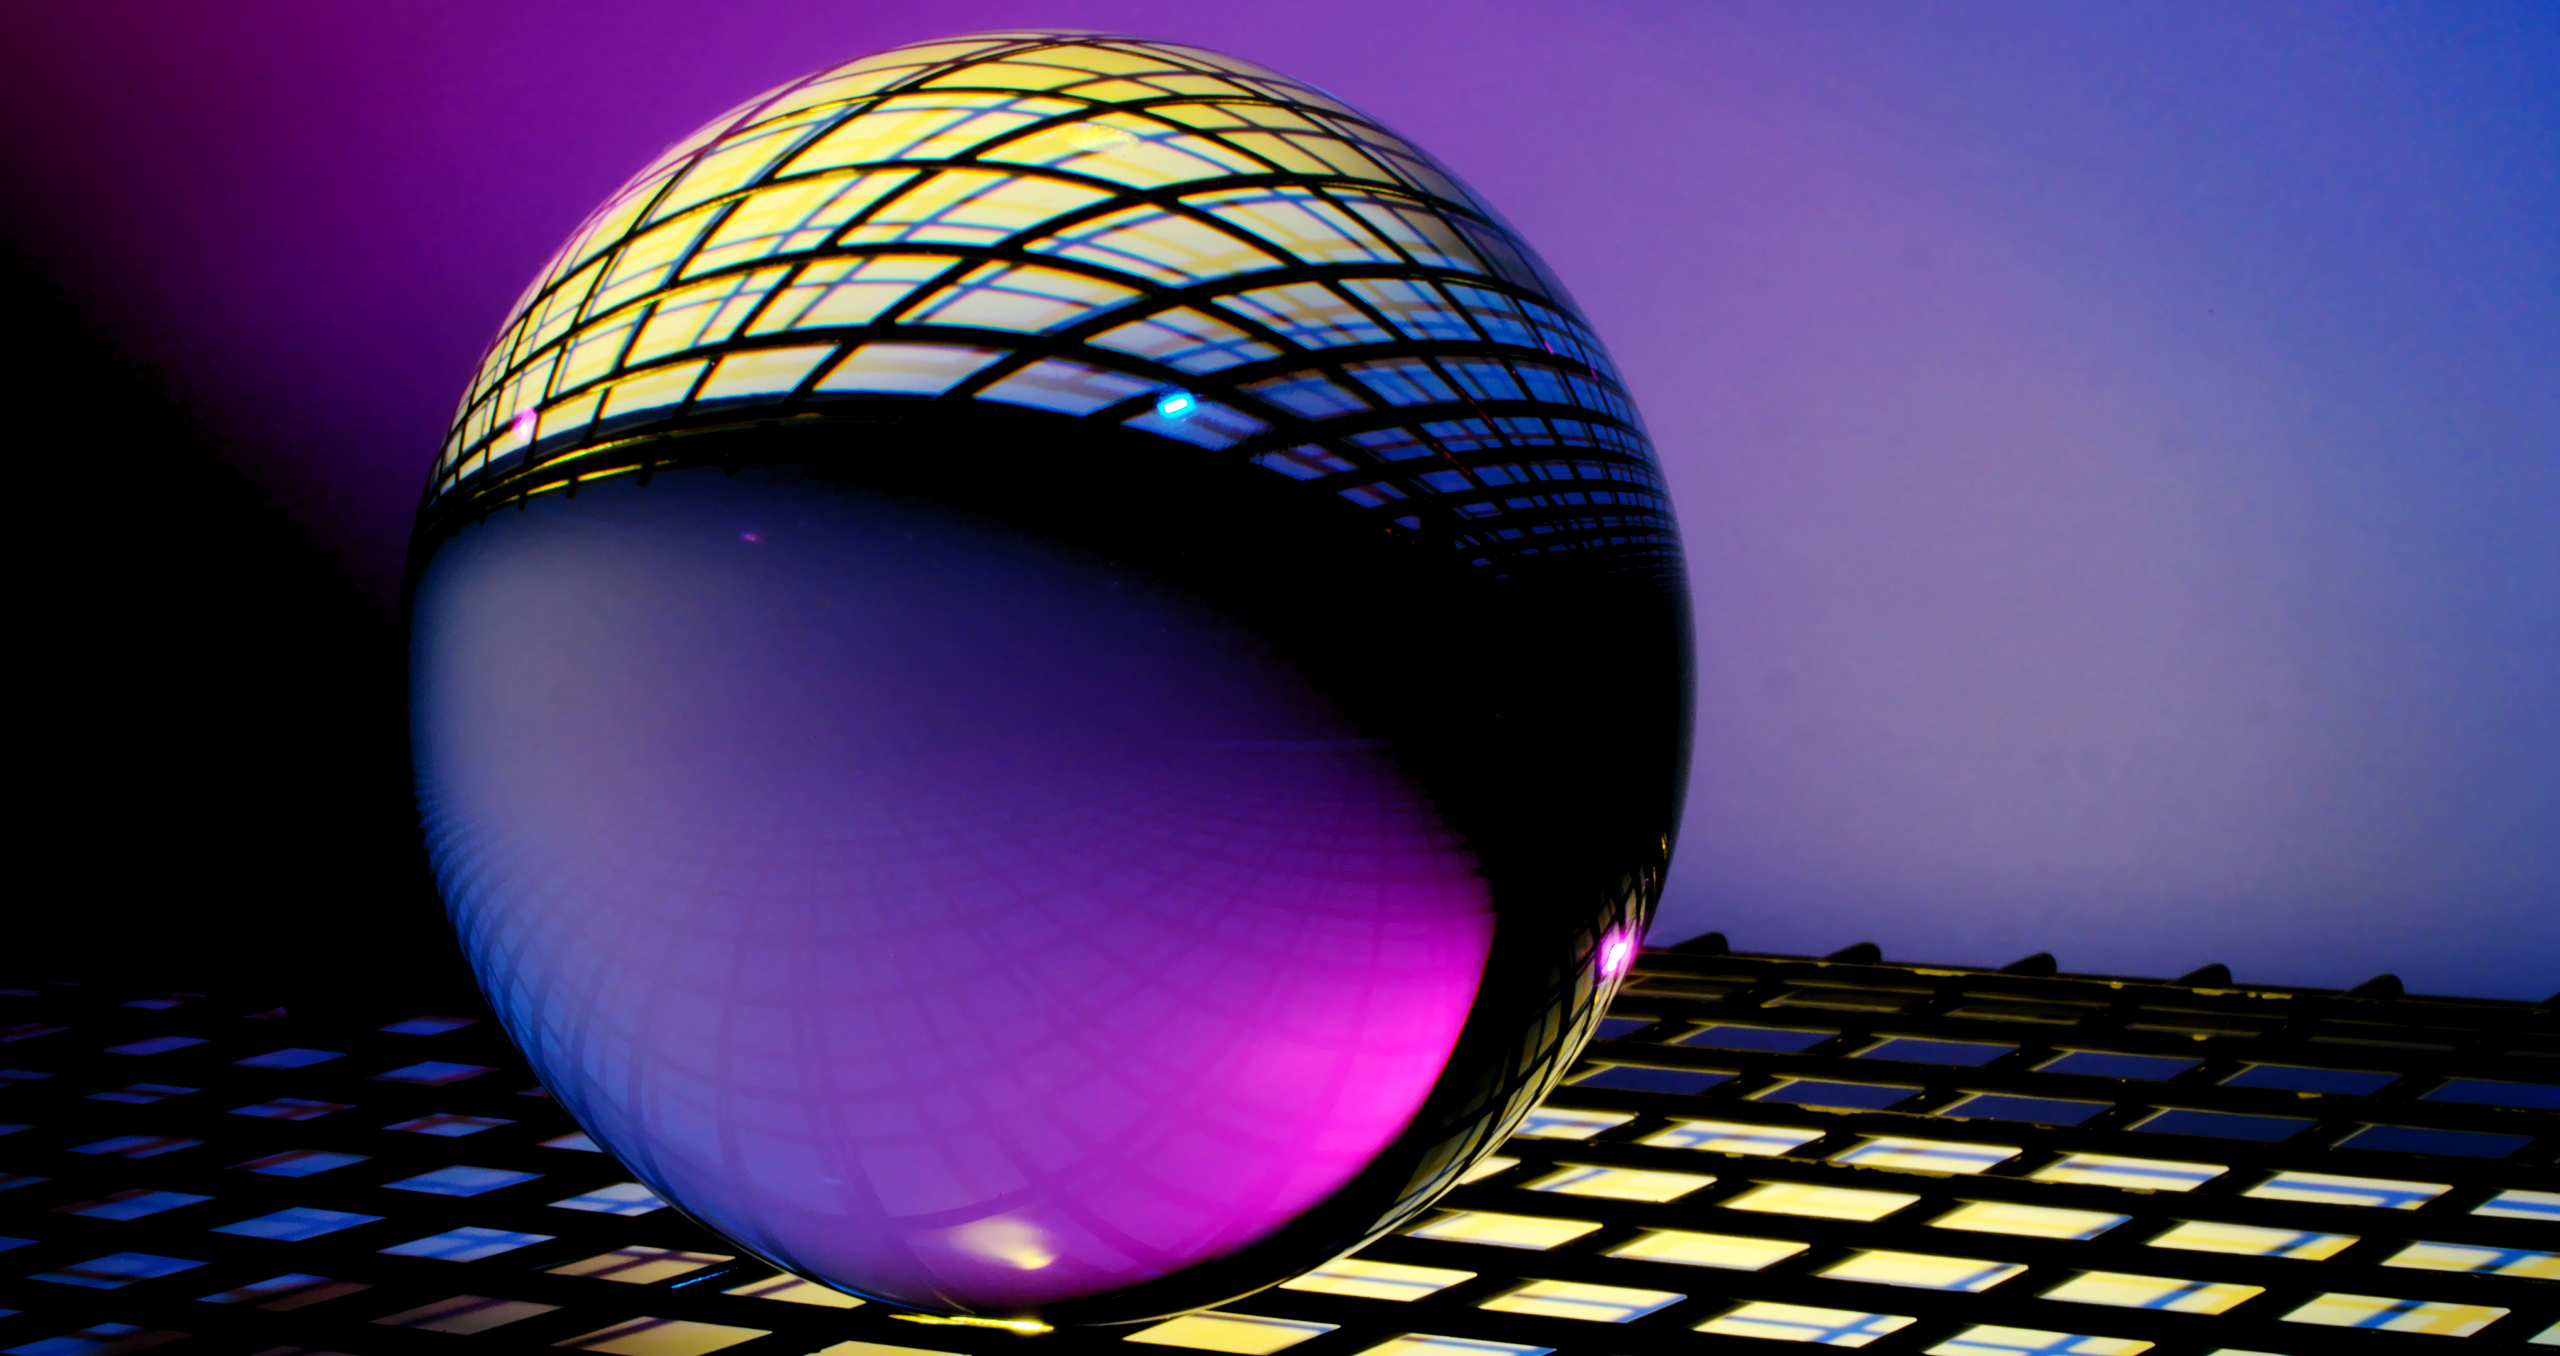 Transparent sphere inverting background of cubes with purple-blueish background colors